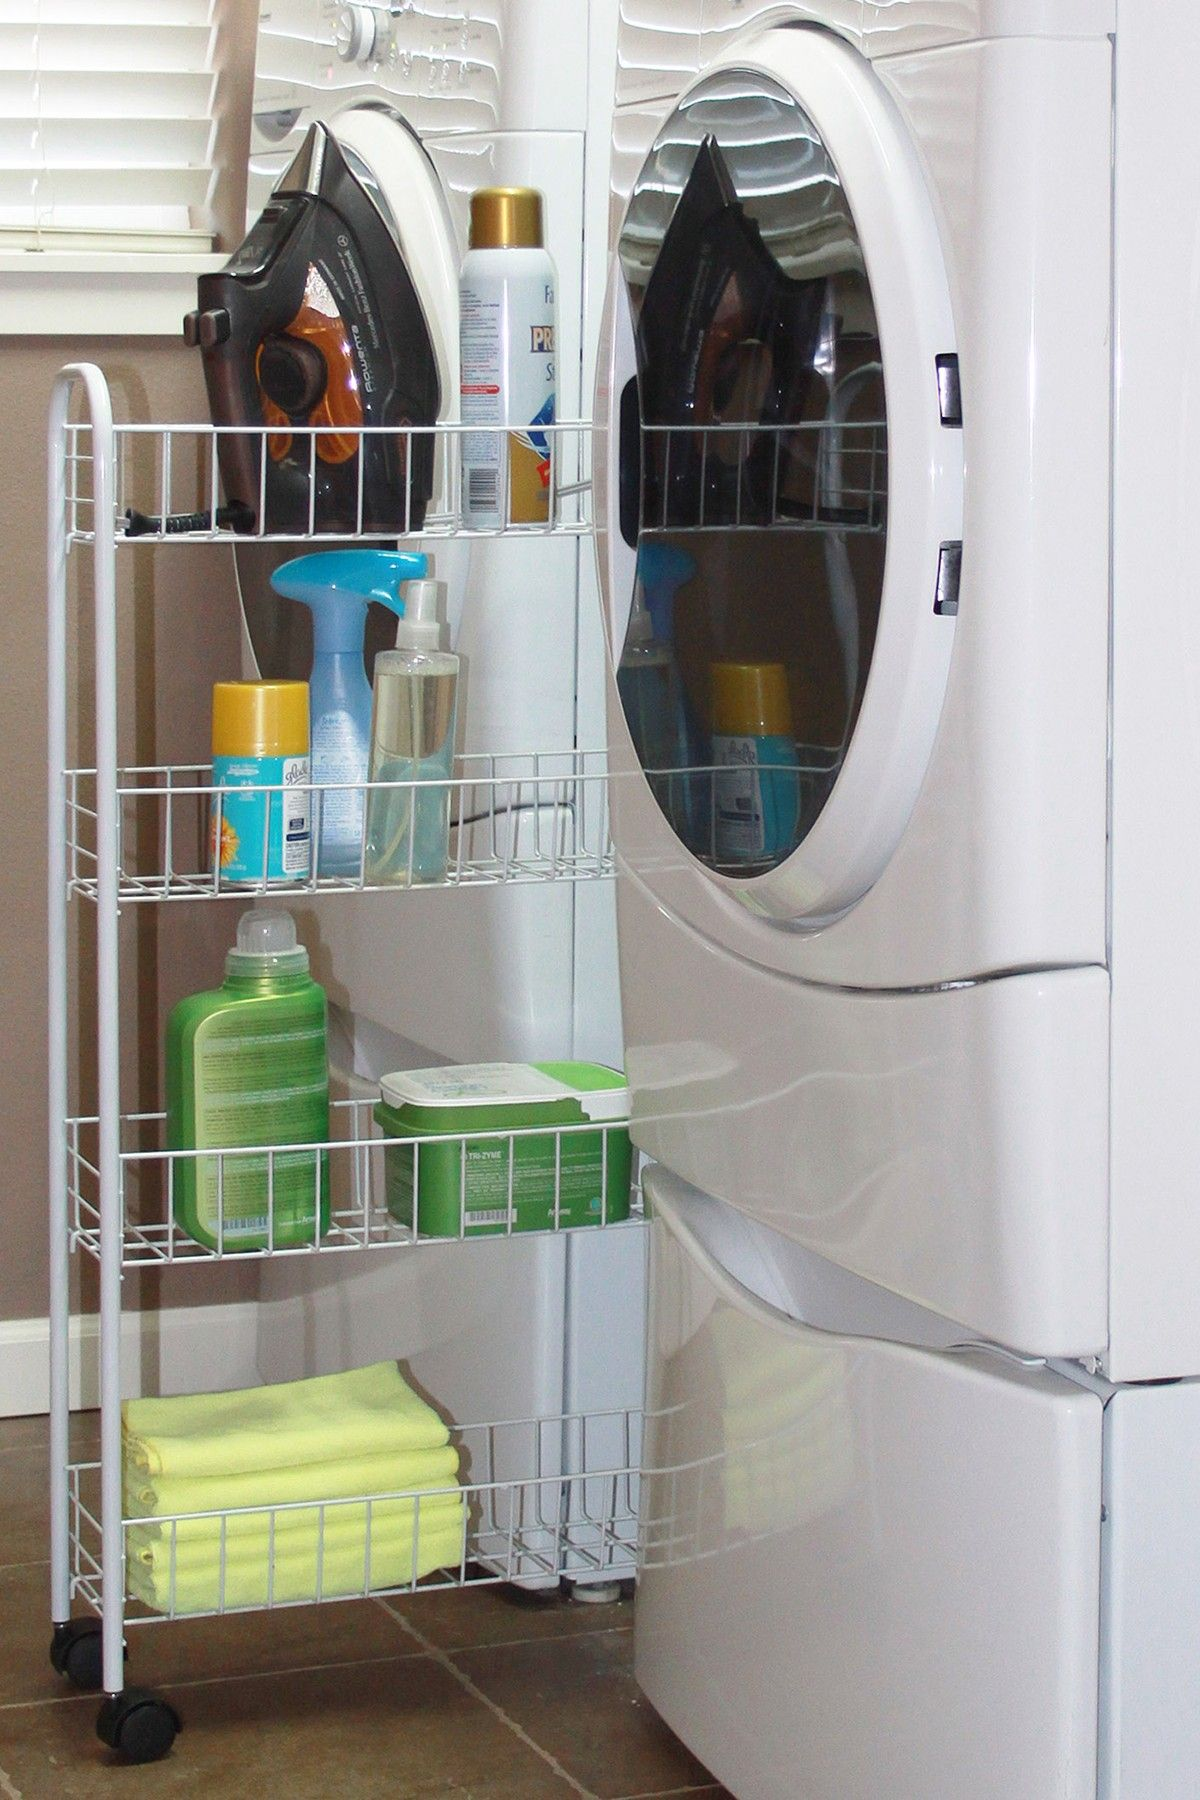 store laundry supplies b/t the washer & dryer with a storage rack